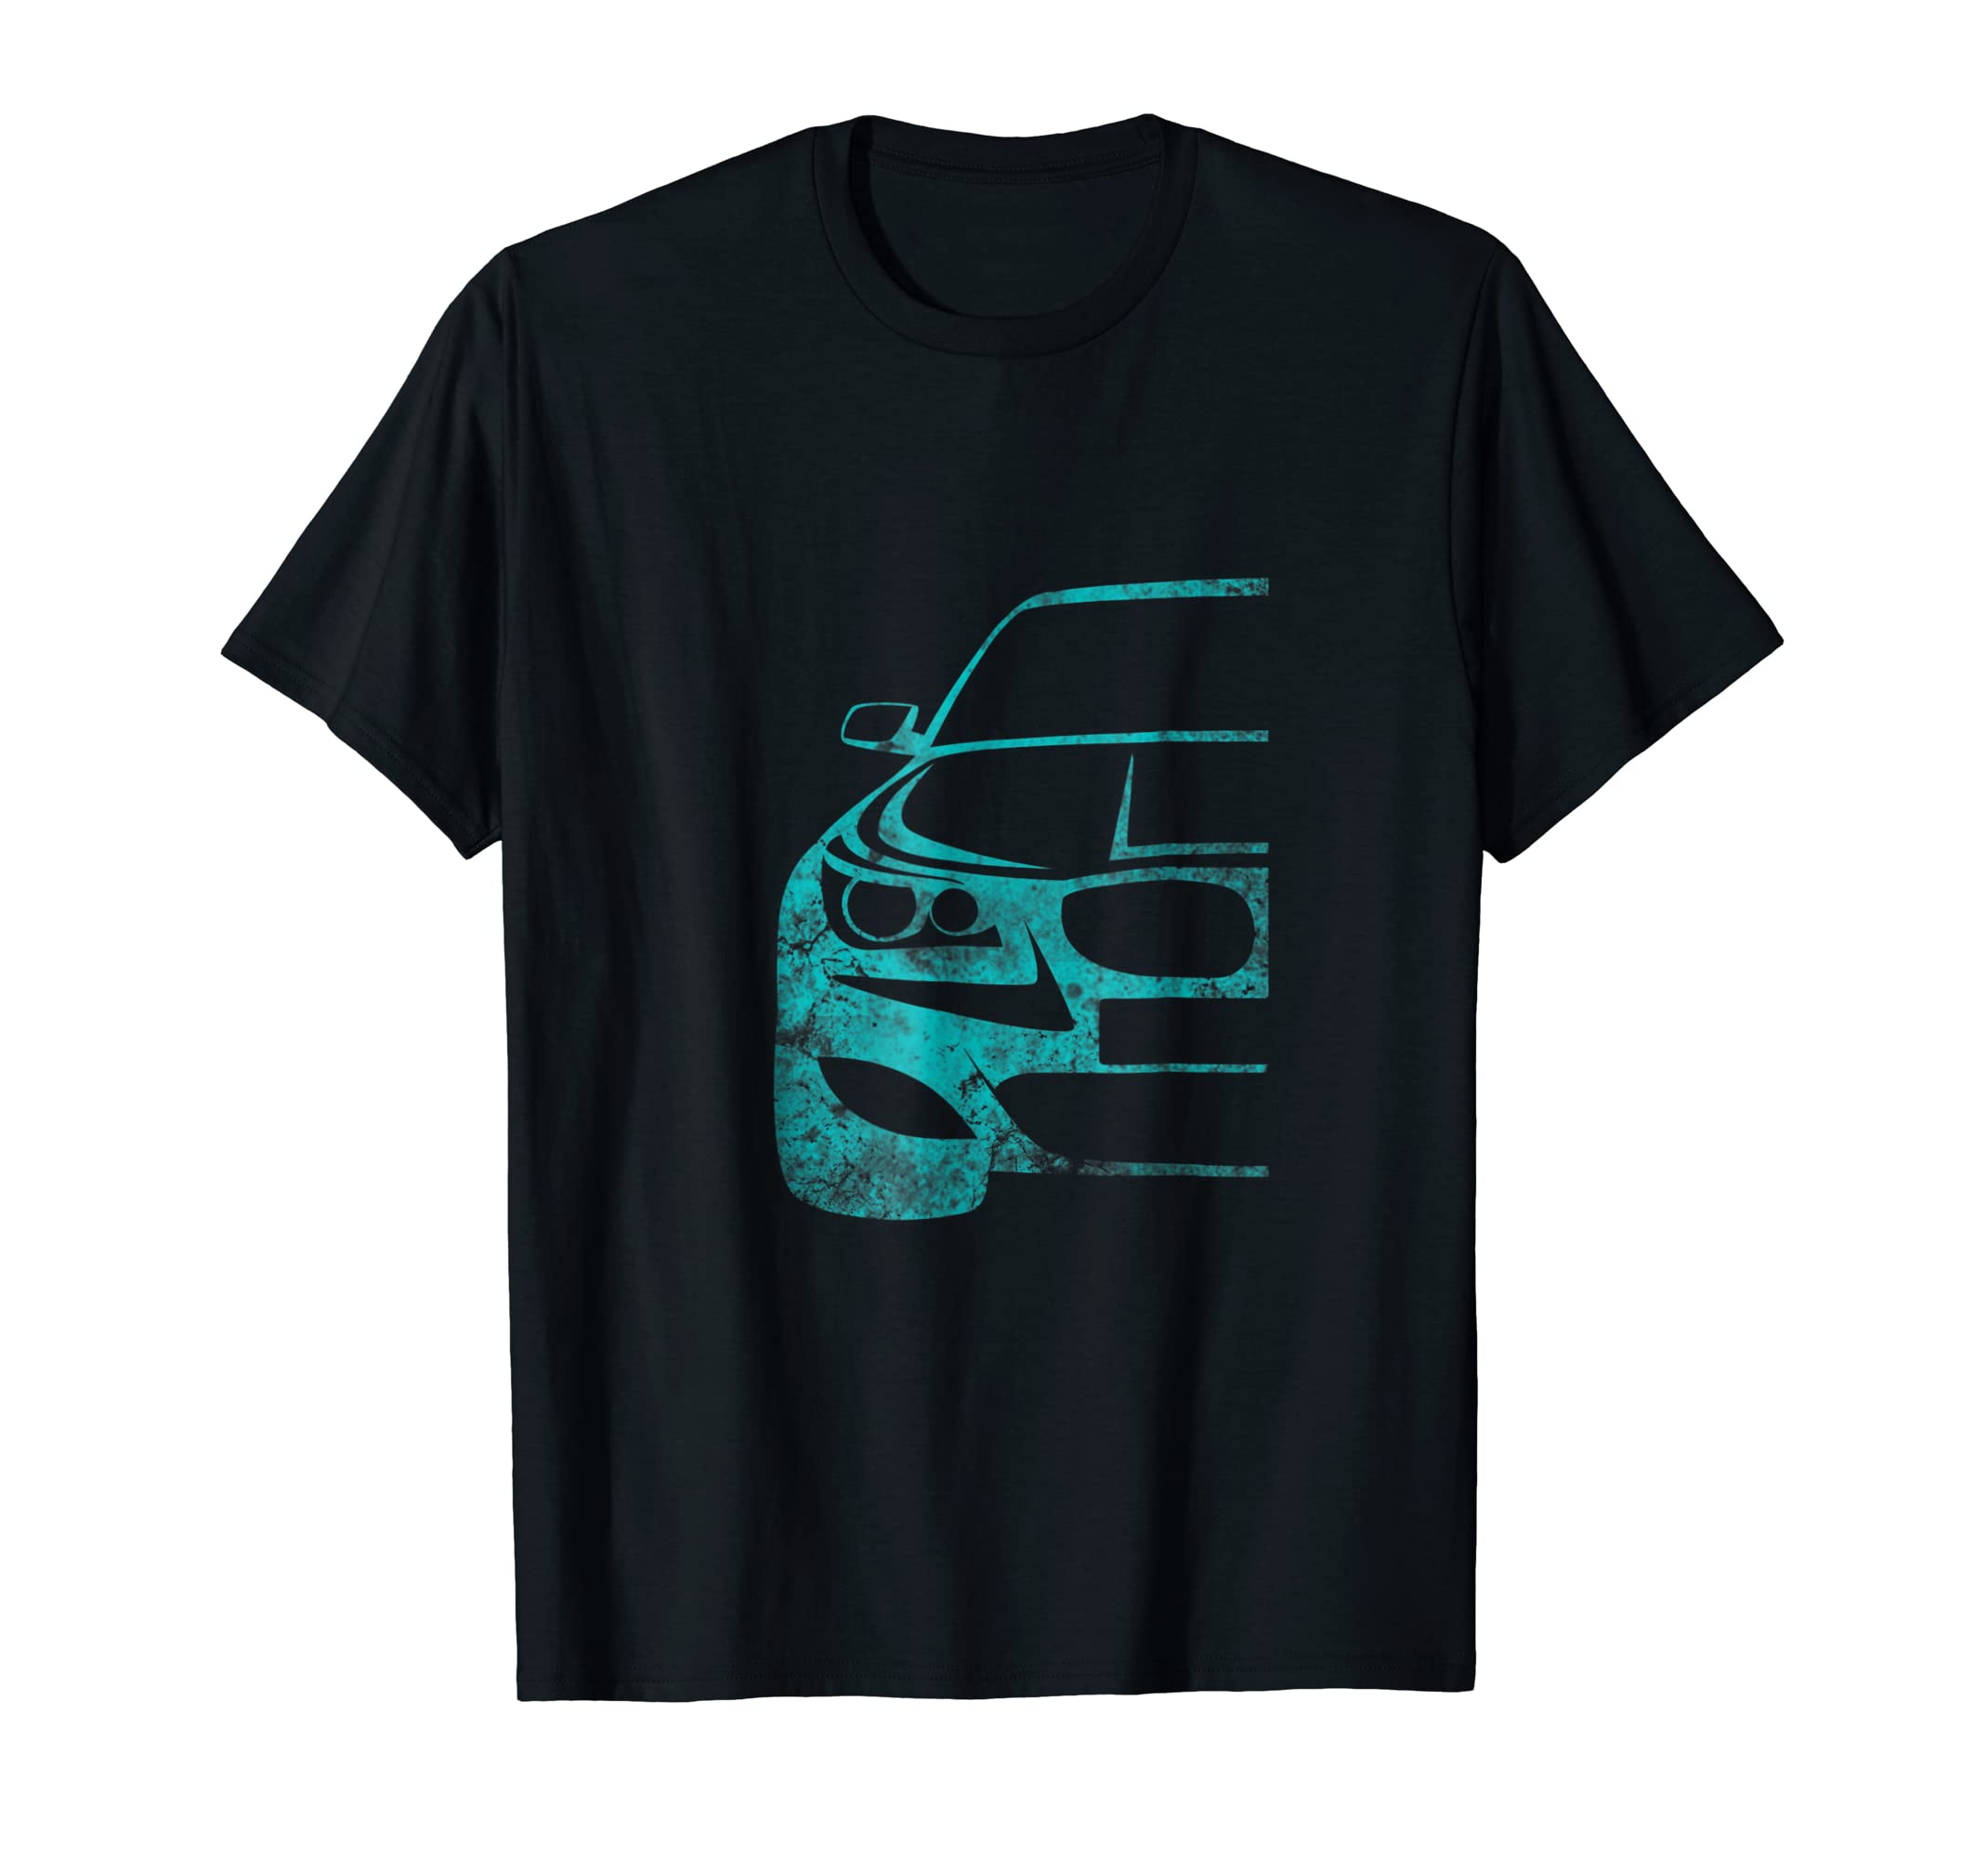 0d76900ac Awesome Designed T Shirts - DREAMWORKS